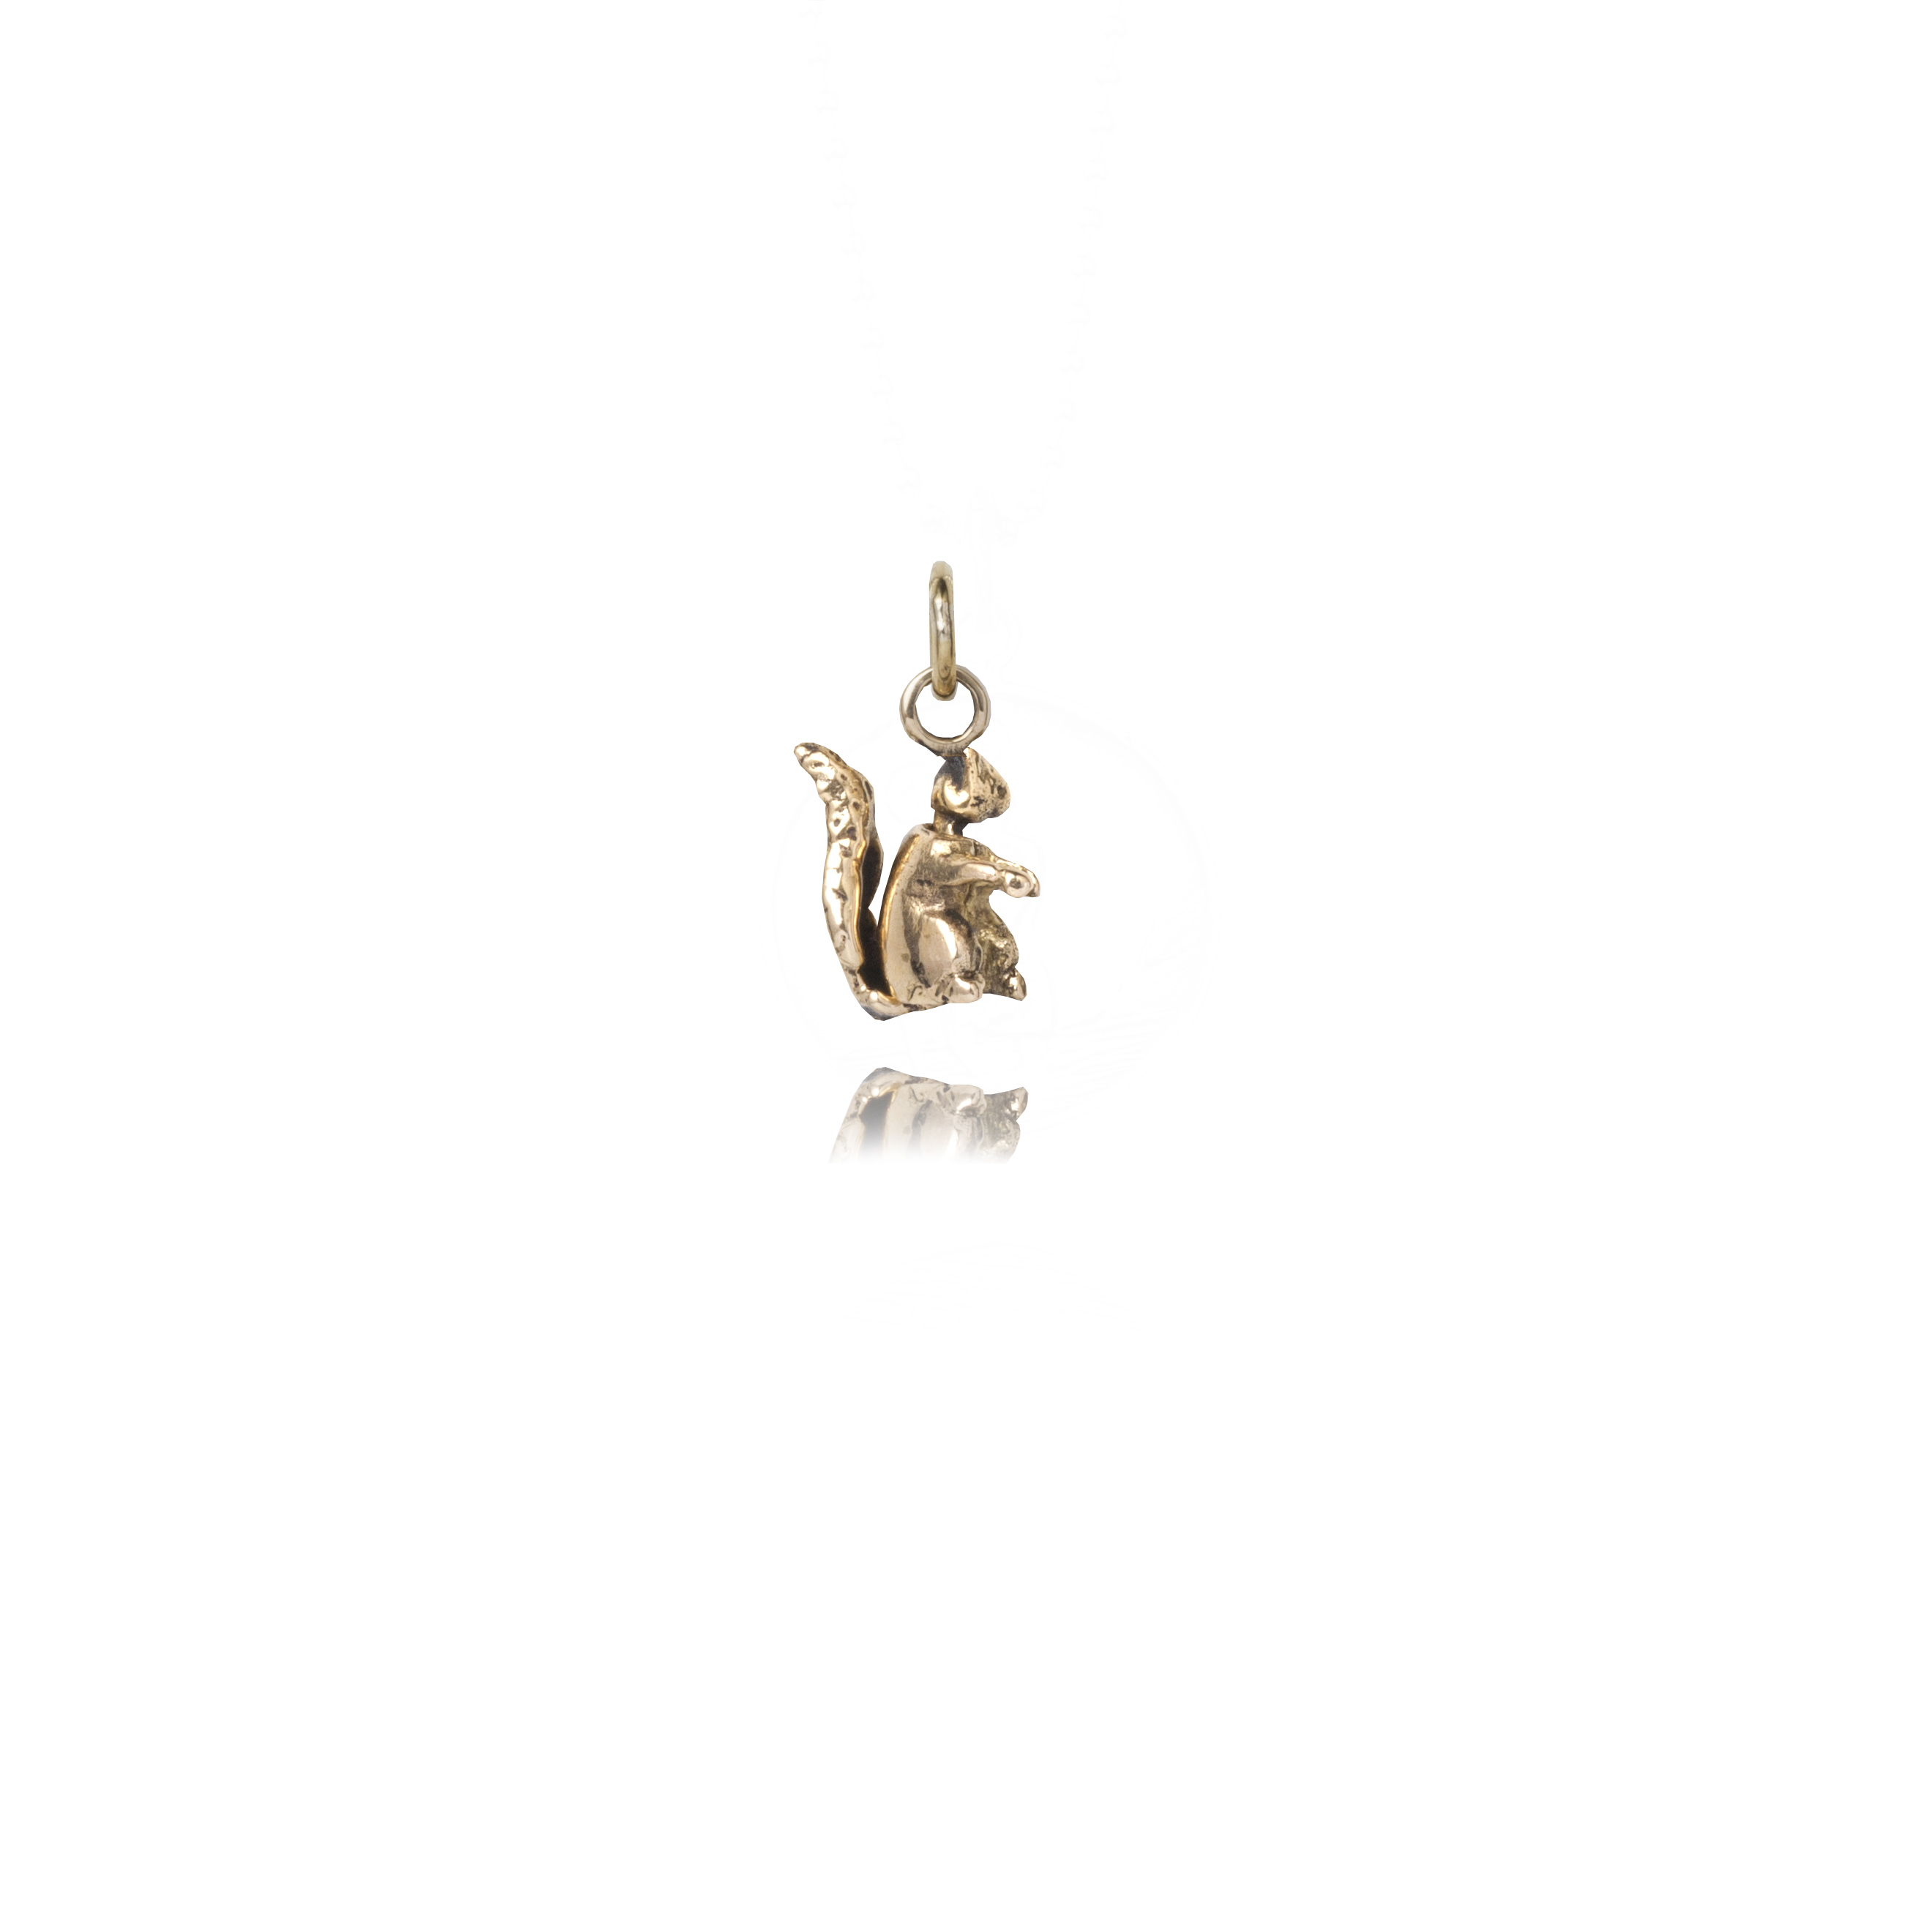 Brass Squirrel Charm